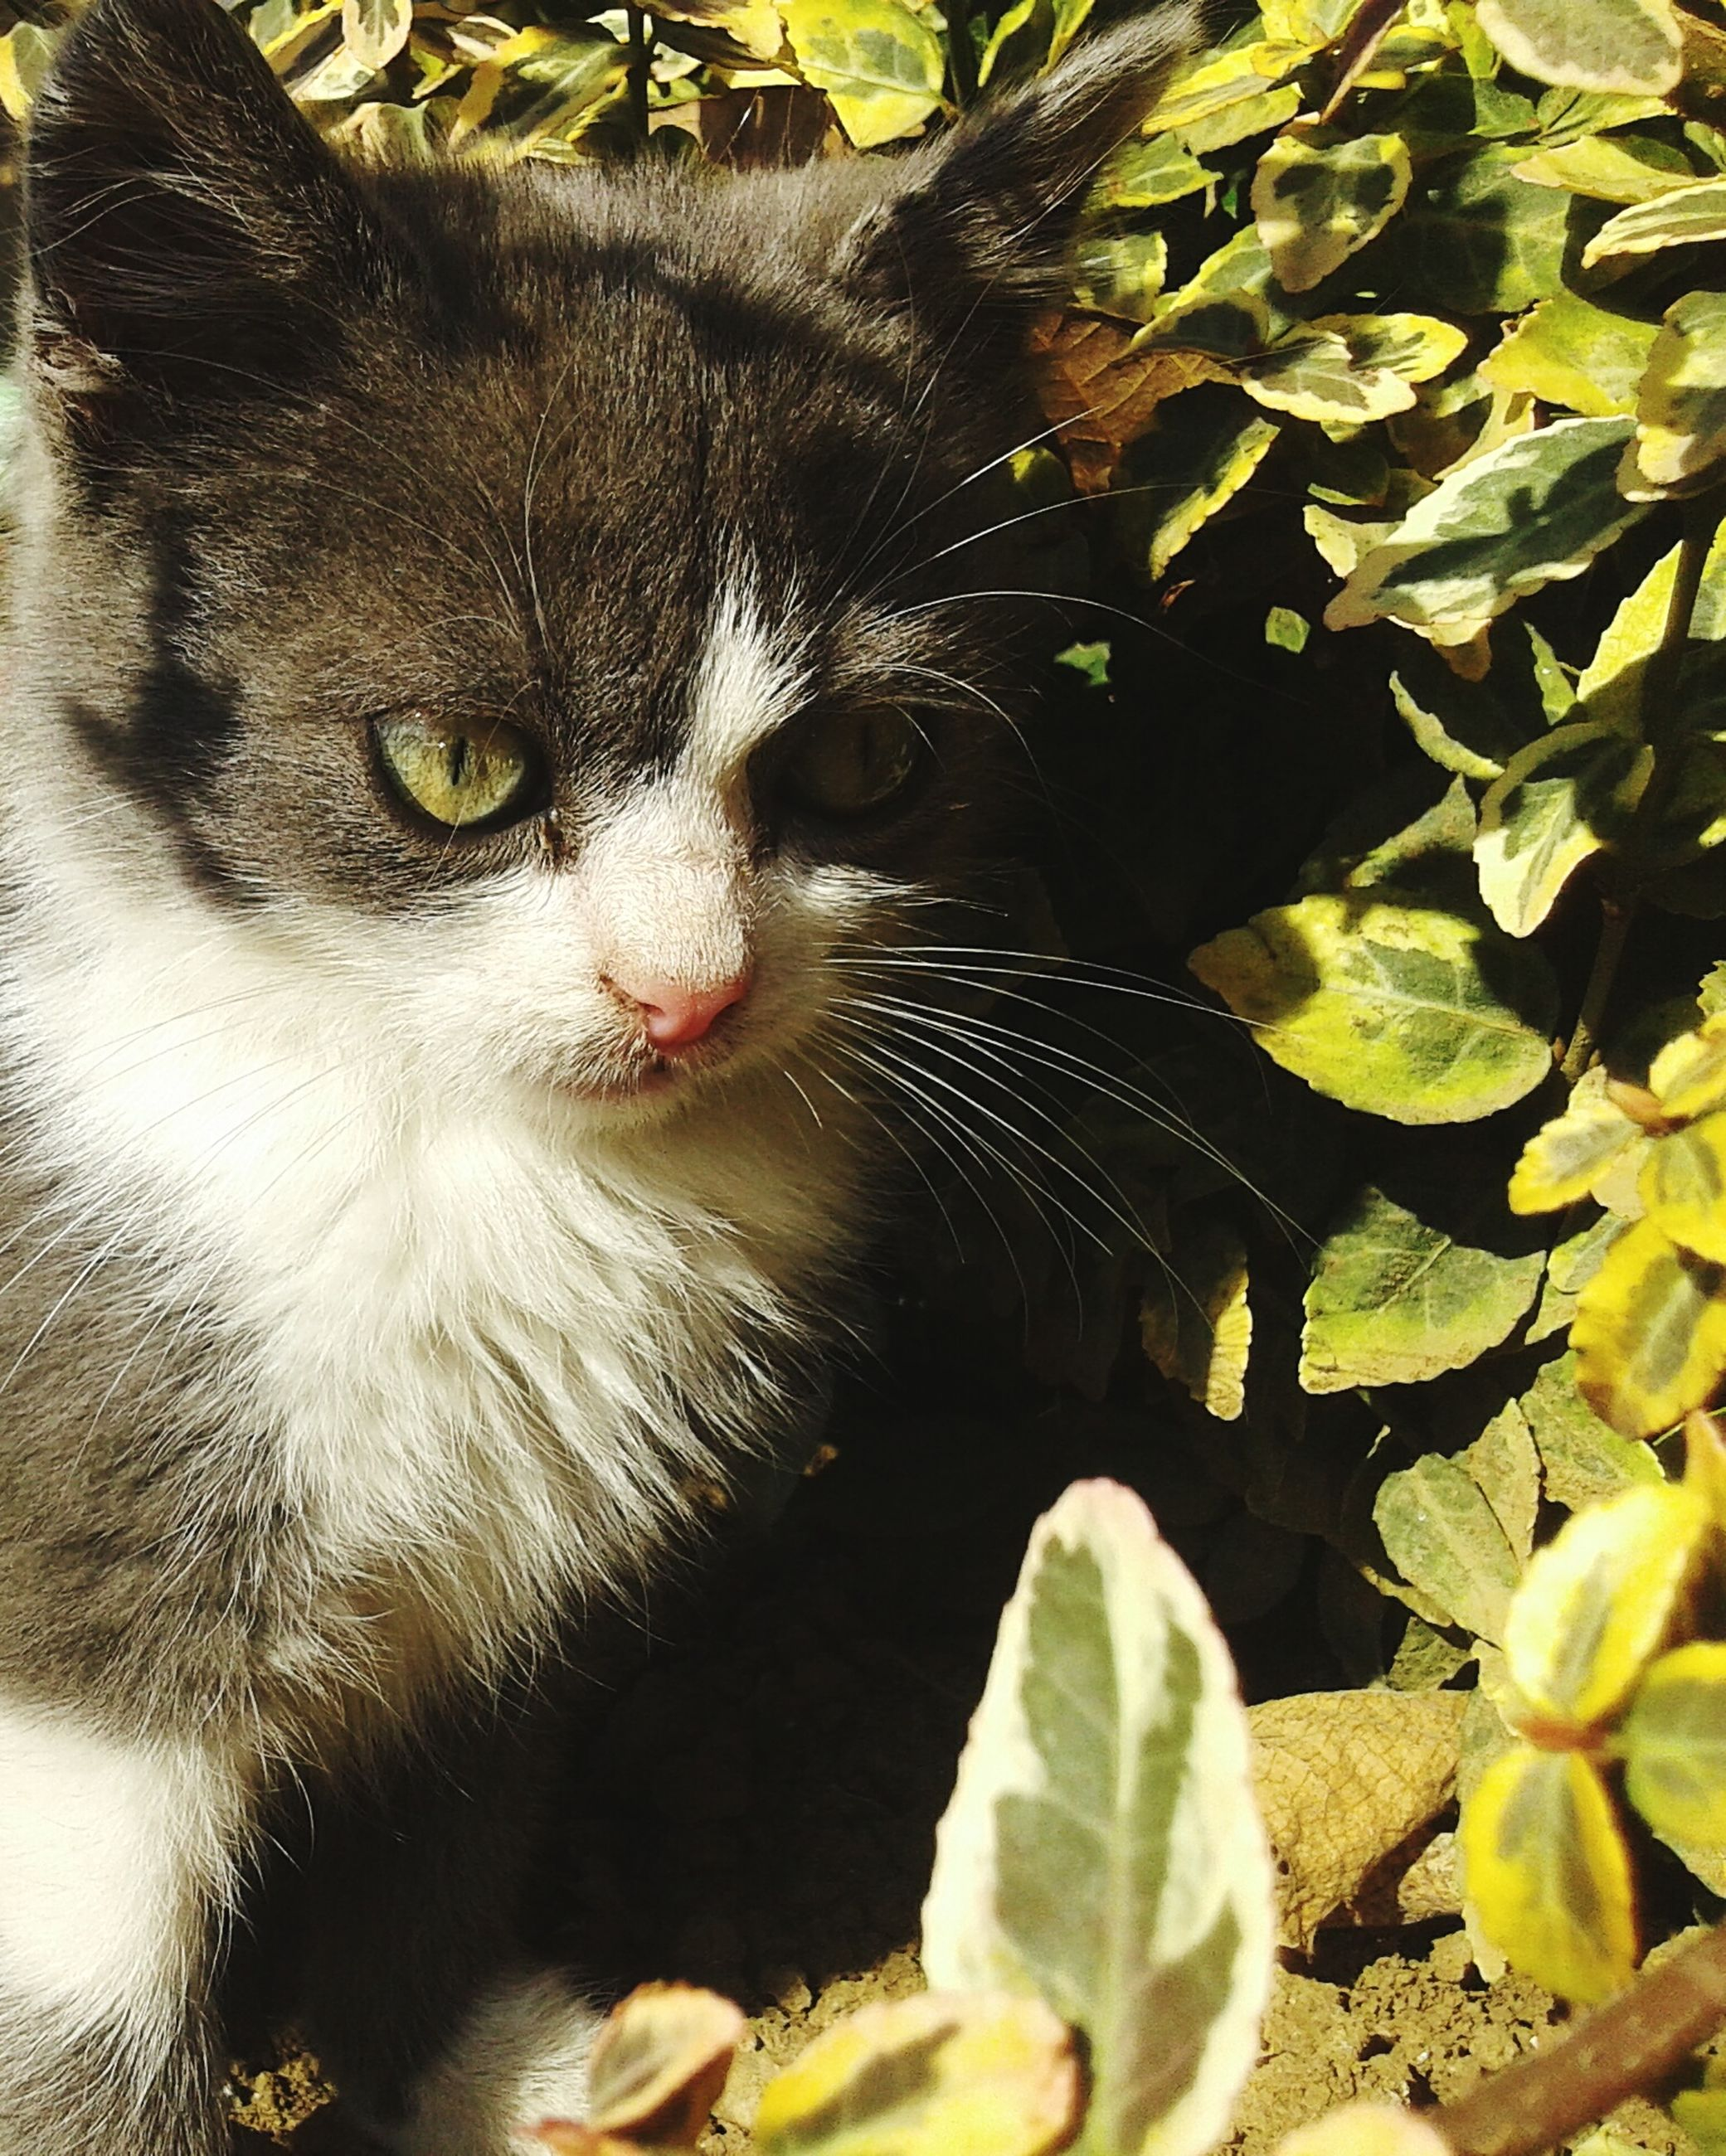 animal themes, one animal, domestic cat, pets, mammal, cat, domestic animals, feline, whisker, portrait, looking at camera, leaf, plant, close-up, nature, wildlife, animal head, outdoors, no people, sitting